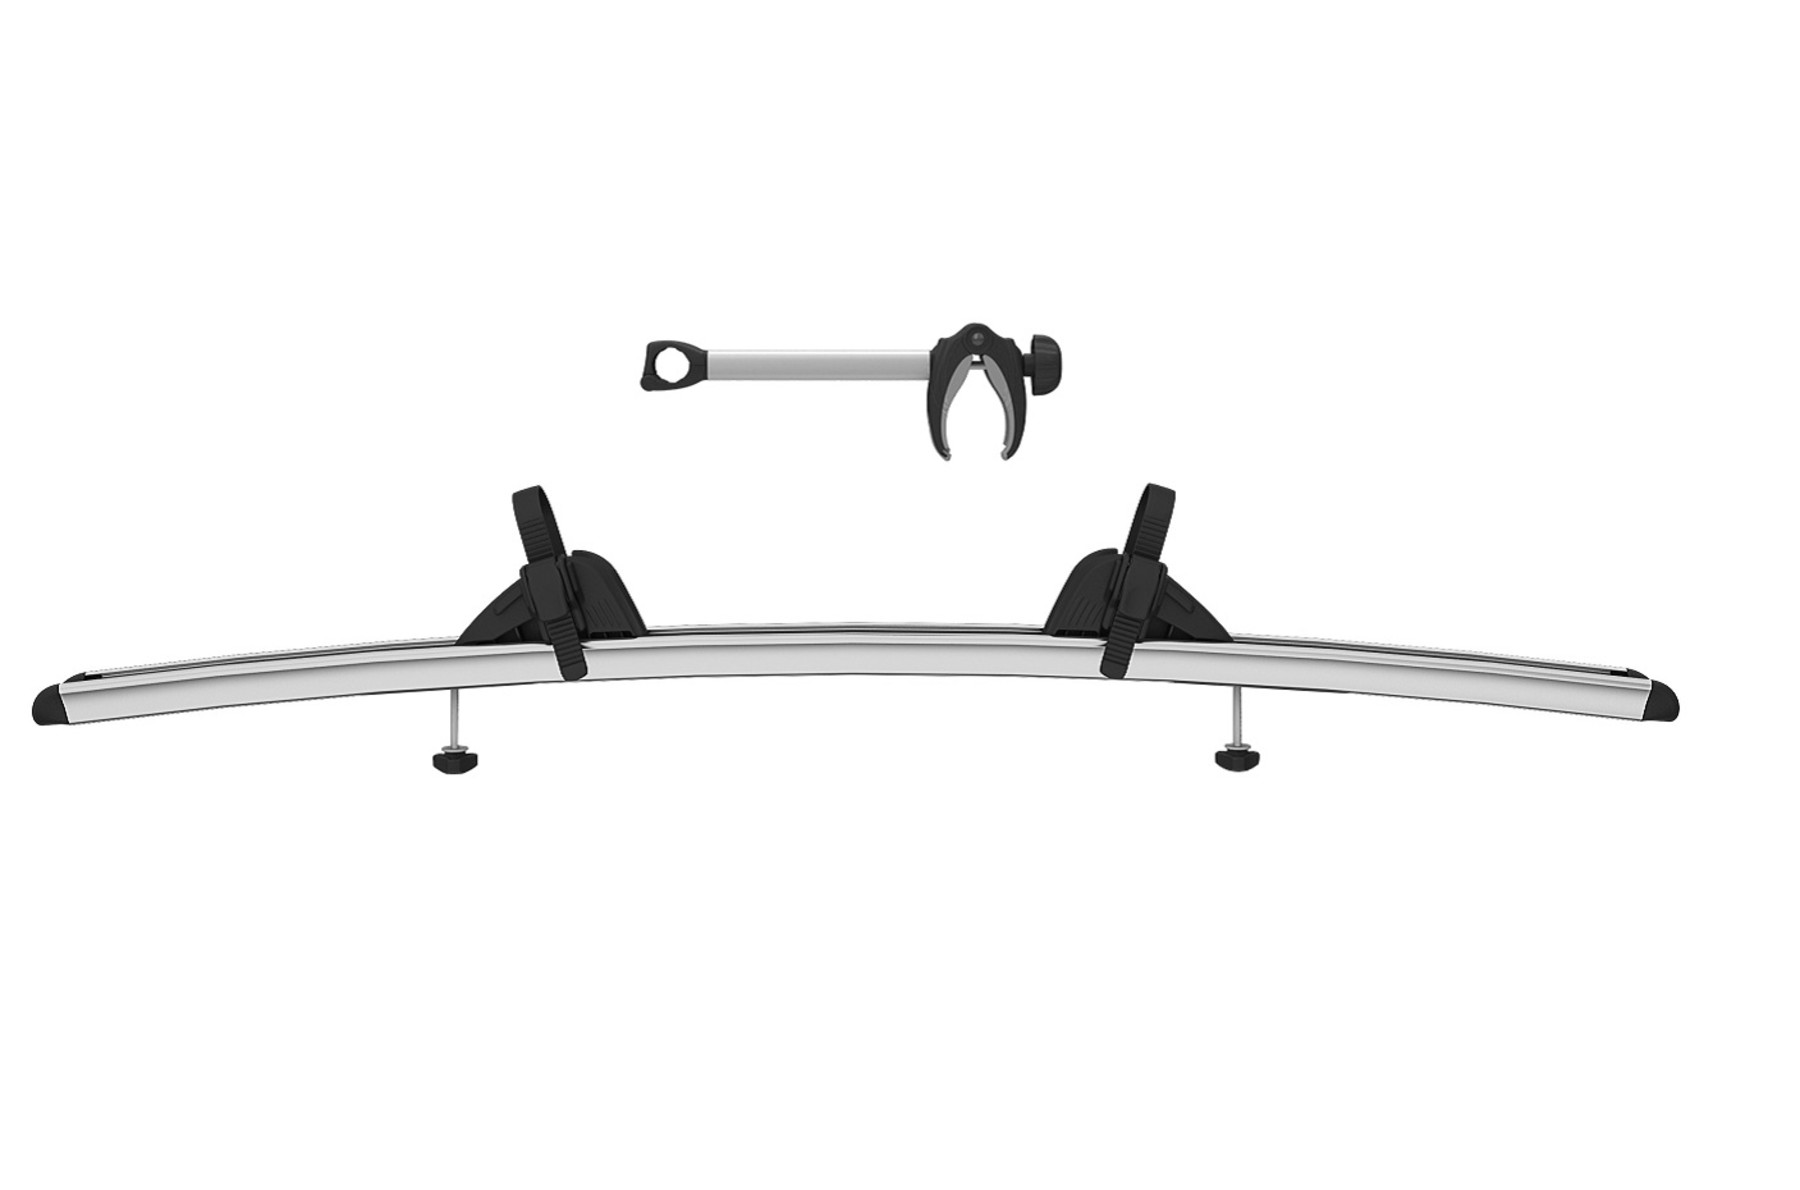 Thule Lift V16 3rd Rail Kit 307370